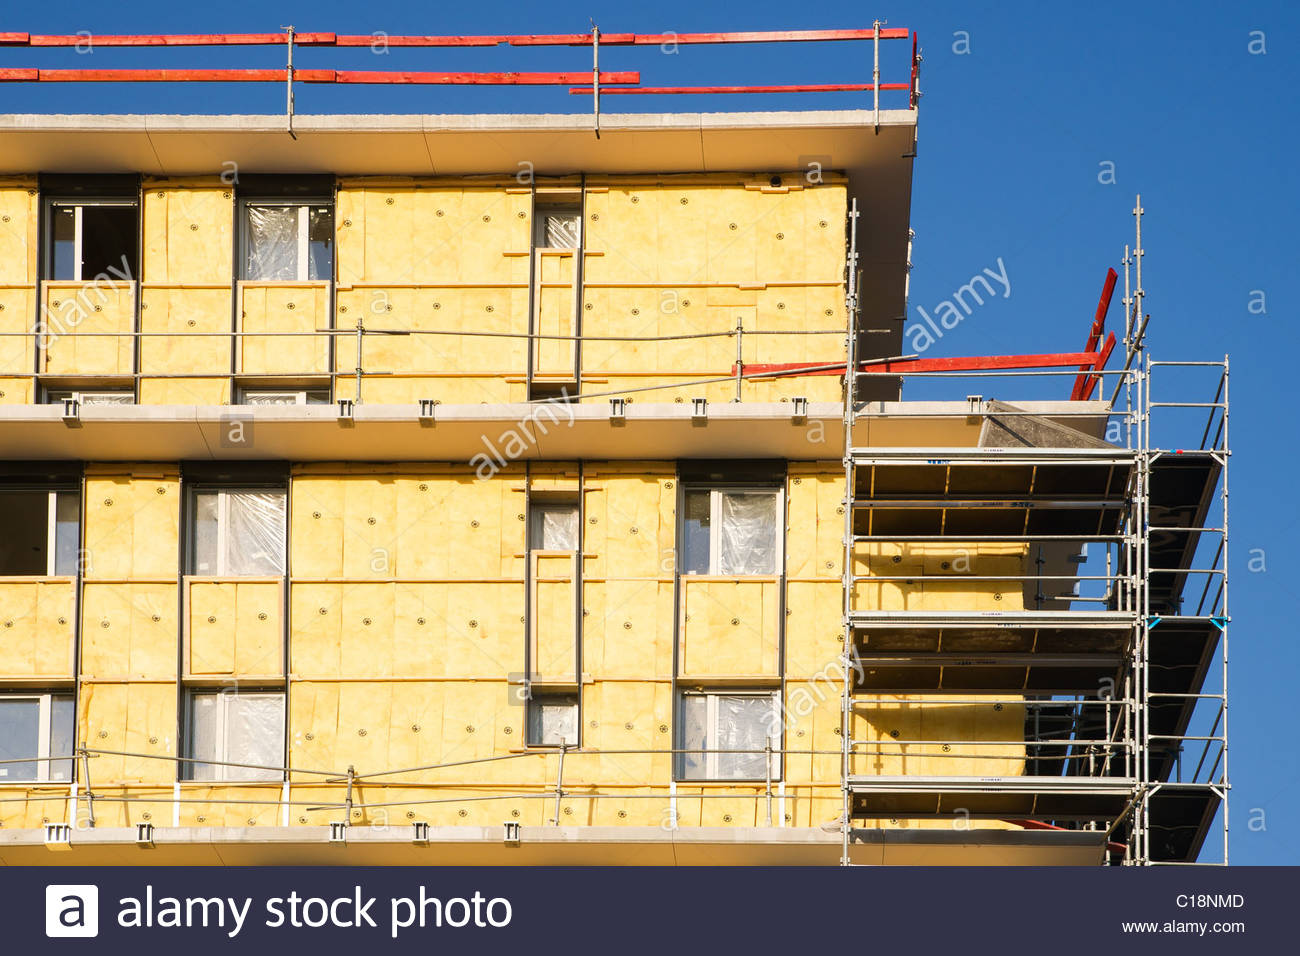 Exterior insulation works on external wall of a building - Stock Image